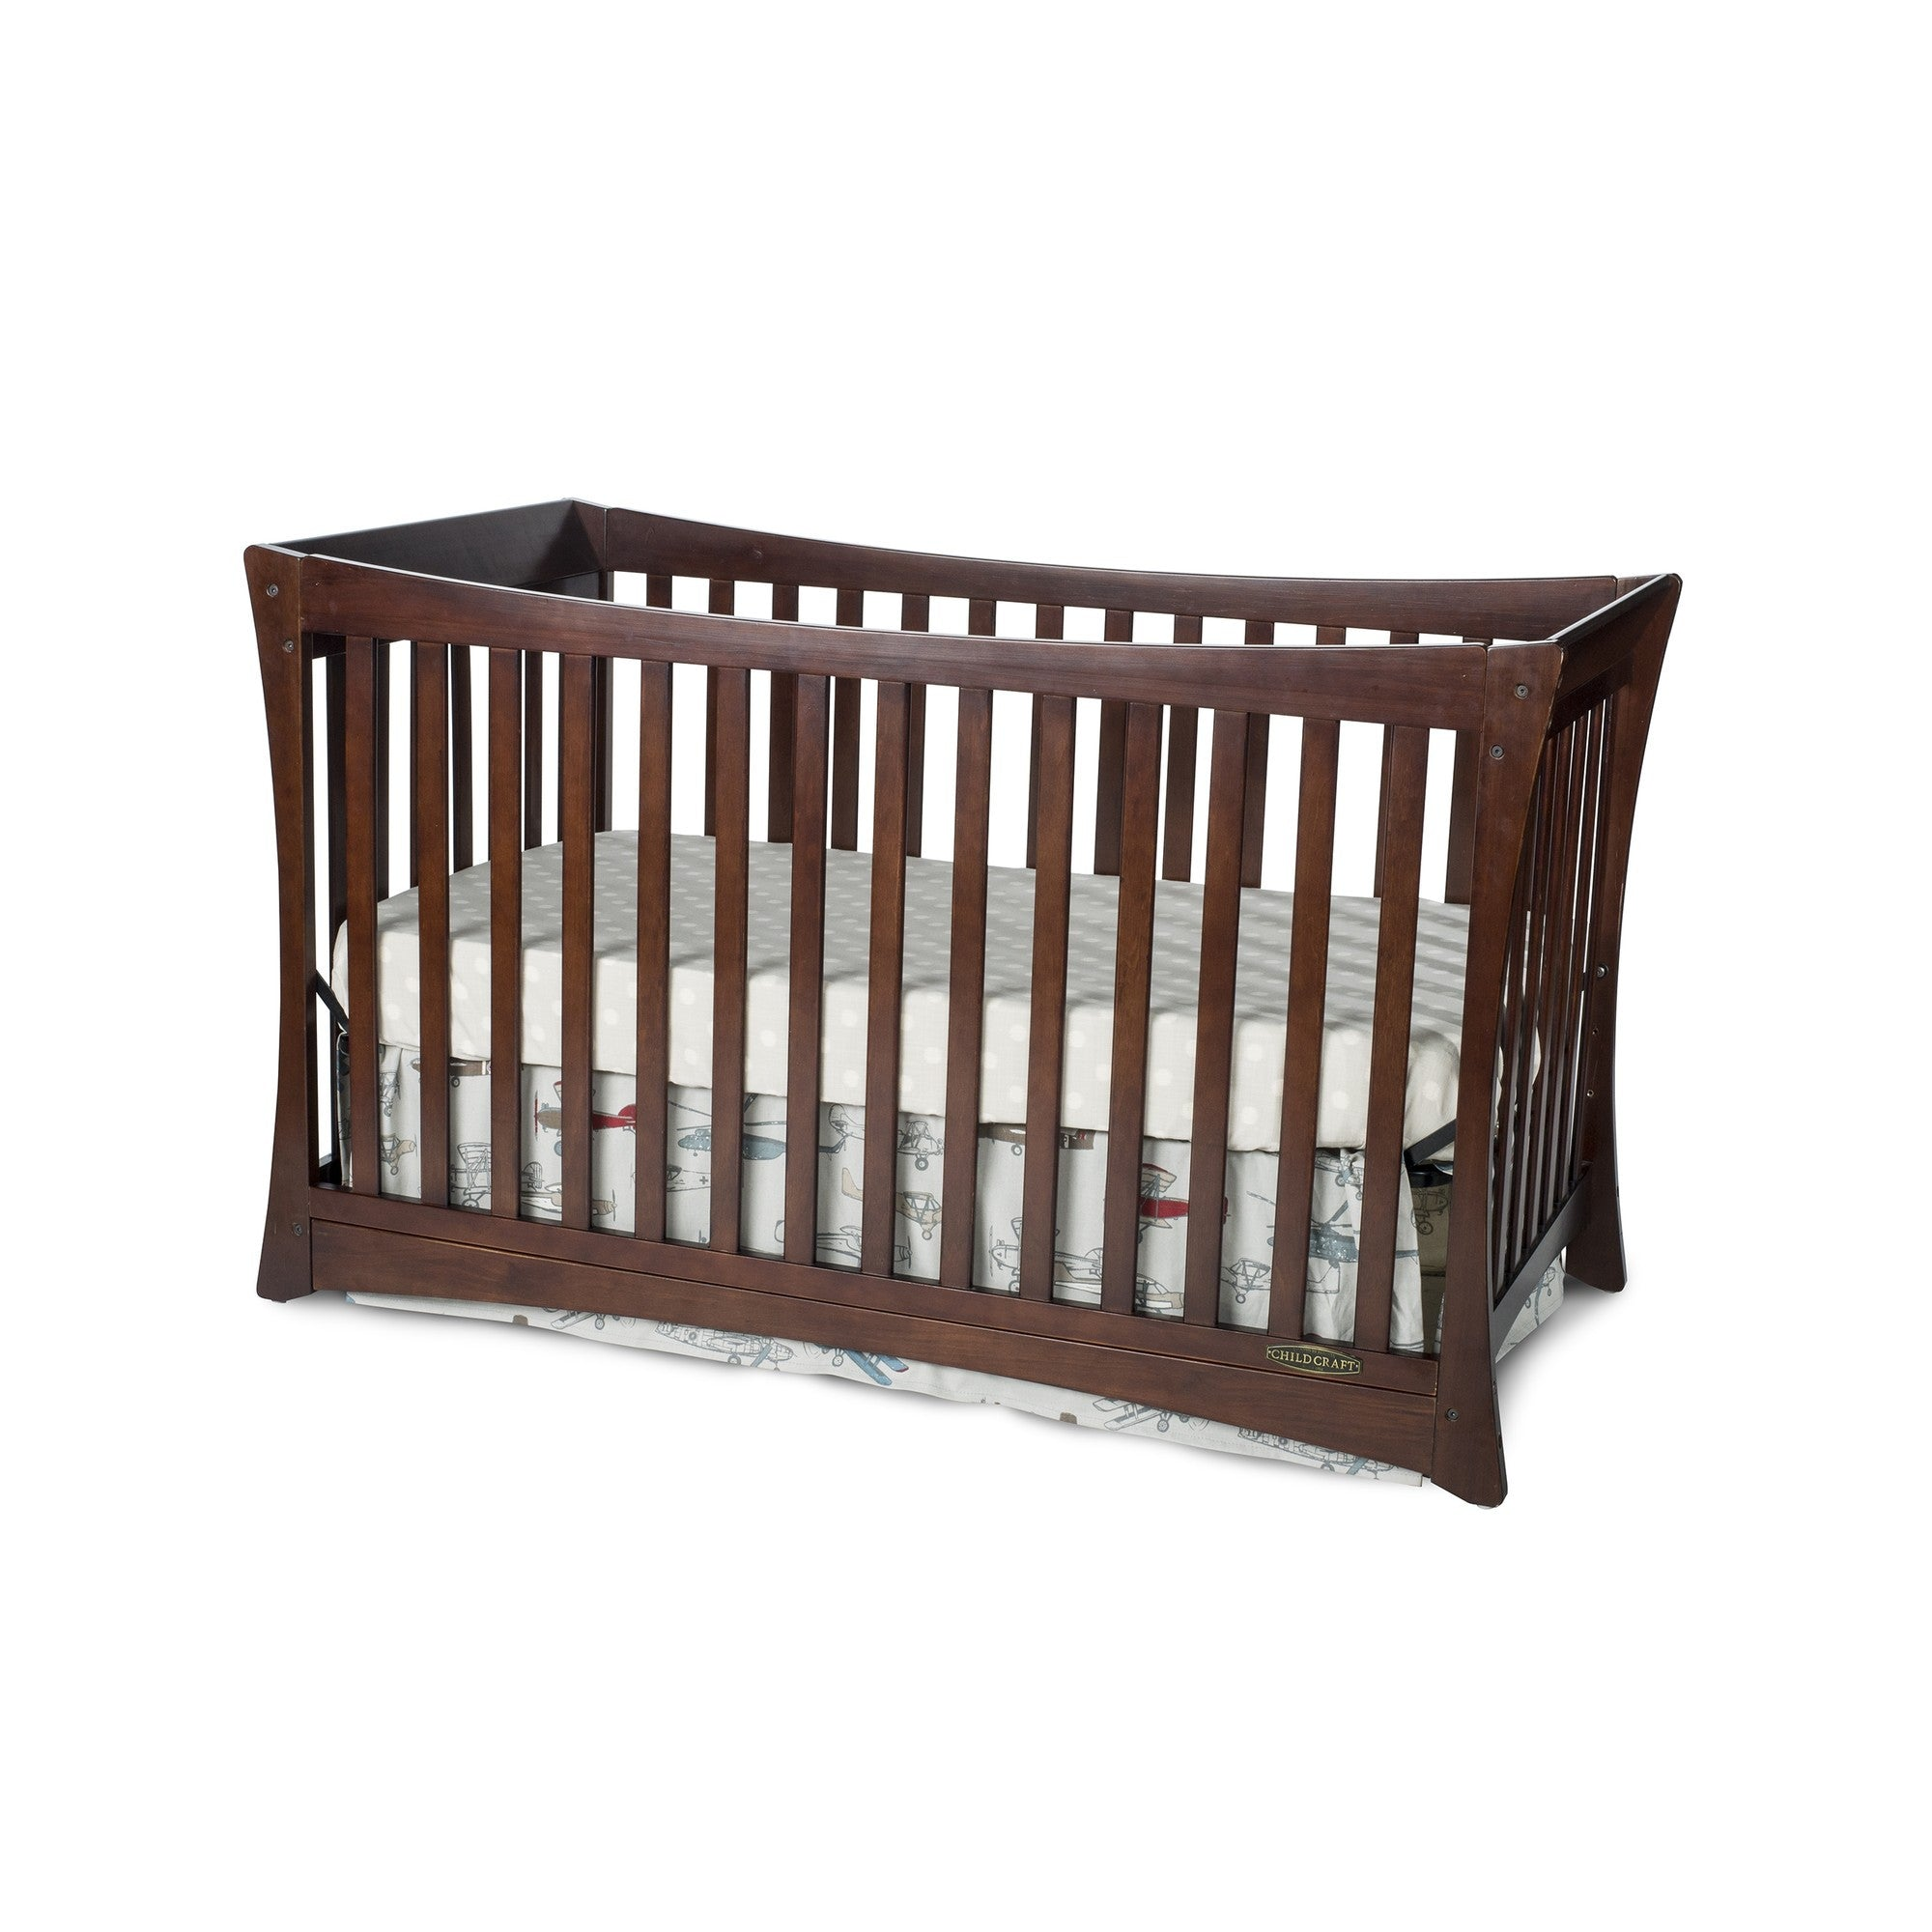 crib amusing awesome table cherry wood ideas a bedroom rustic baby amazing nursery of convertible wall design cribs chair and unique uni